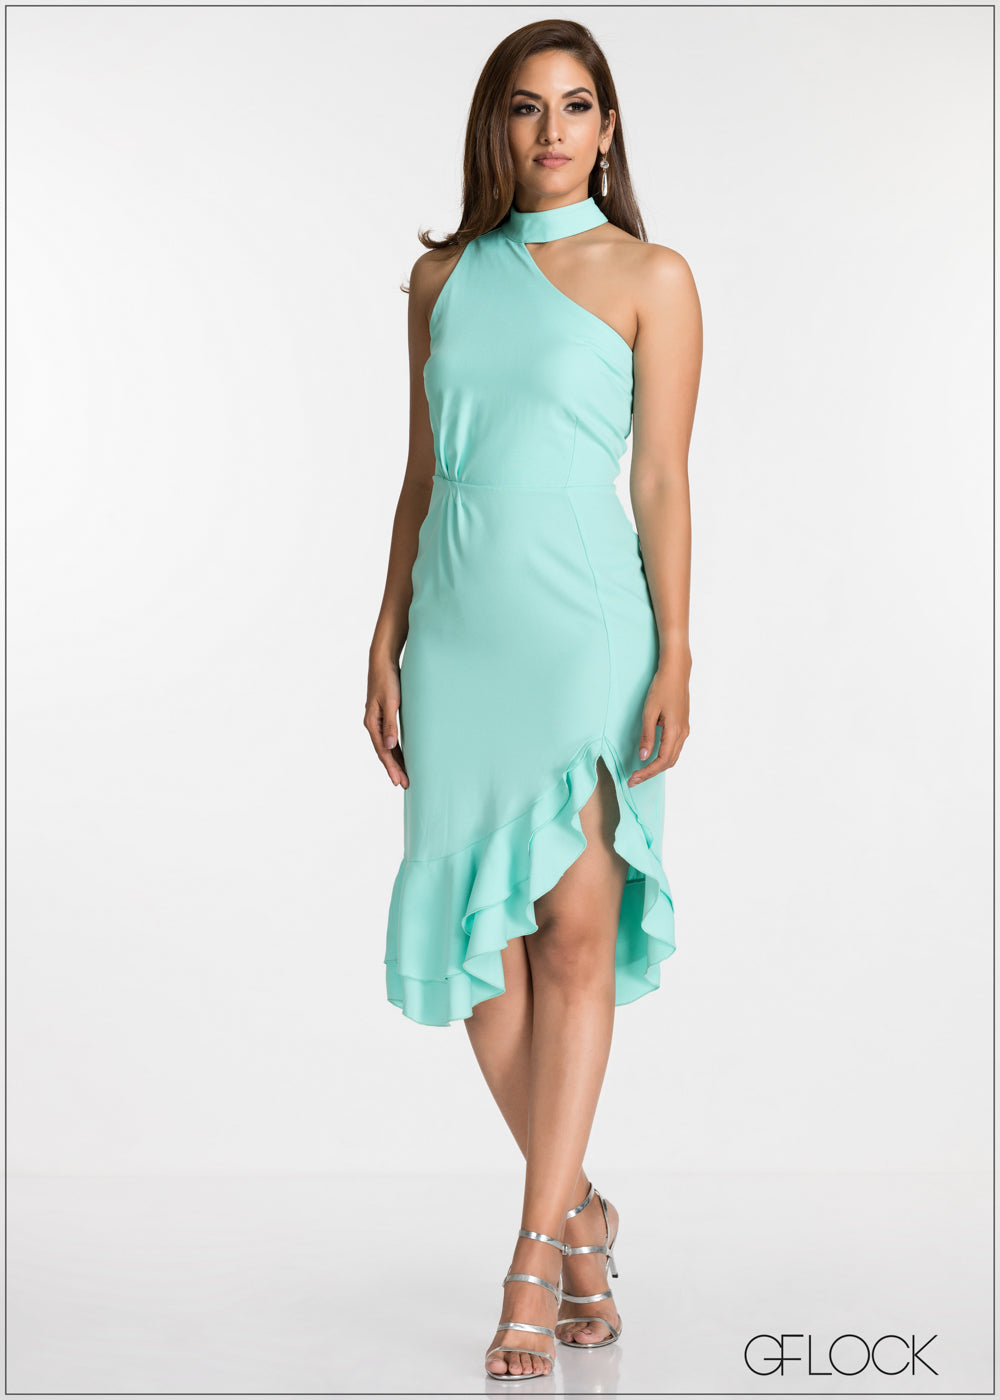 Hem Frill Detail Evening Dress - GFLOCK.LK